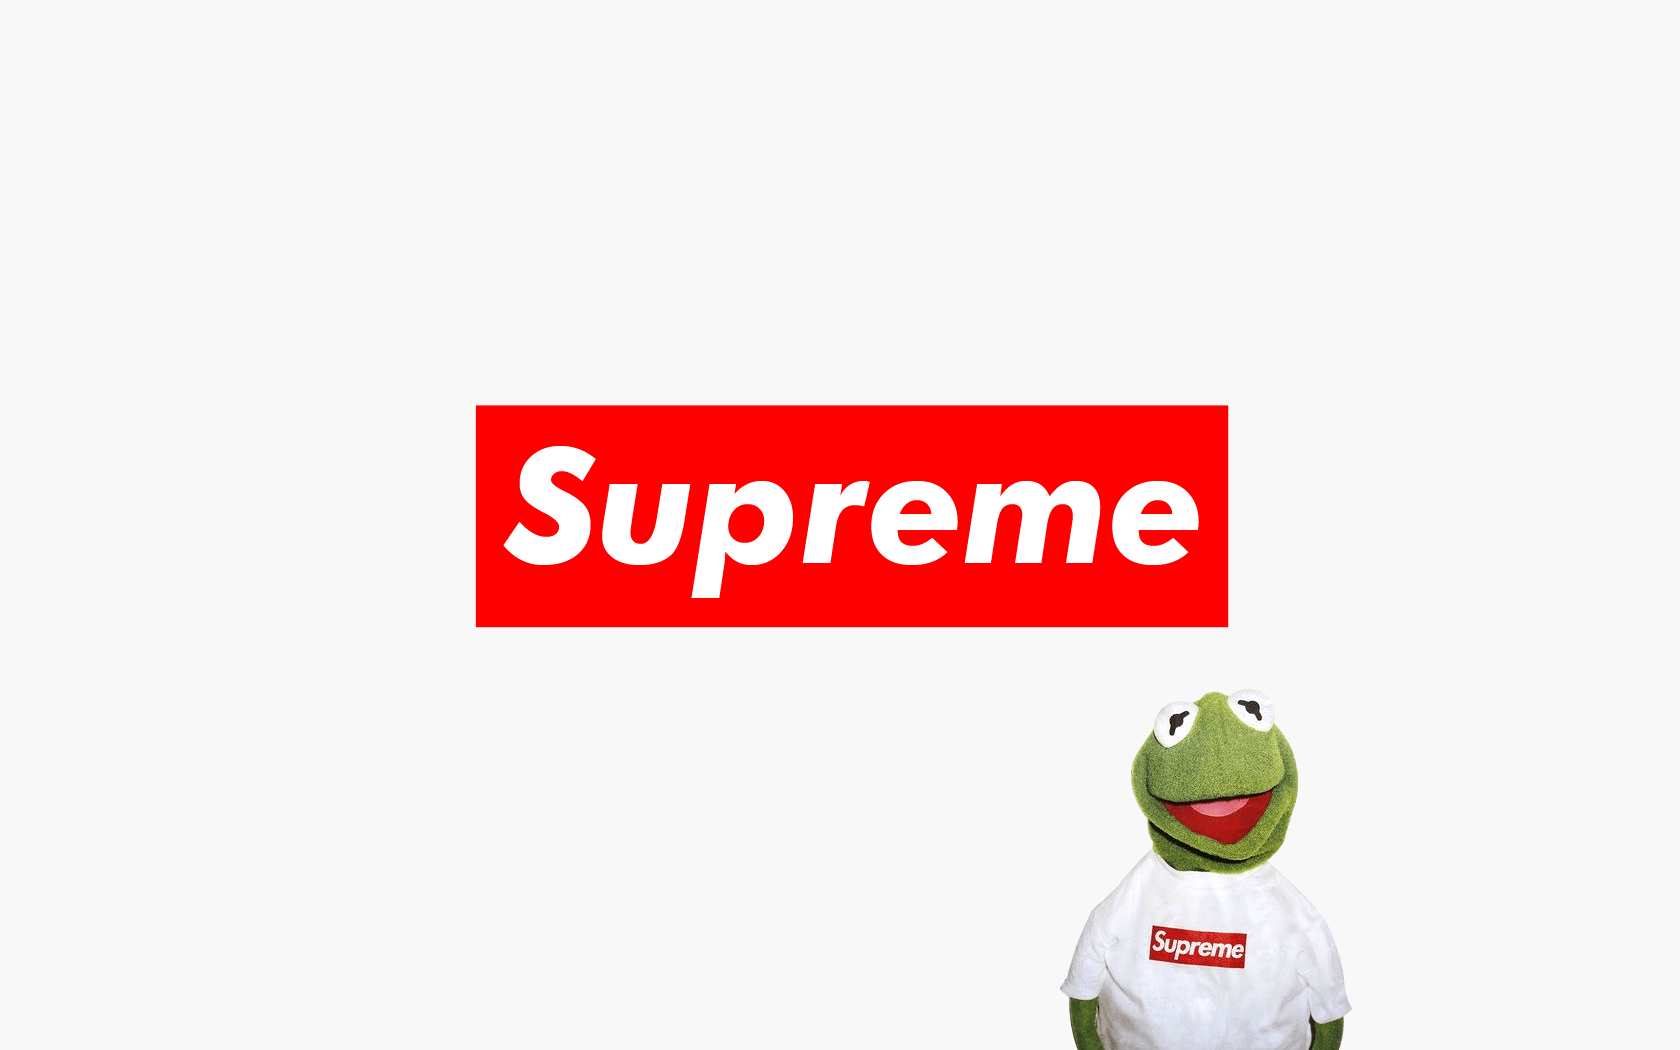 1680x1050 kermit supreme | 壁紙 | Pinterest | Kermit, Supreme and Supreme ...